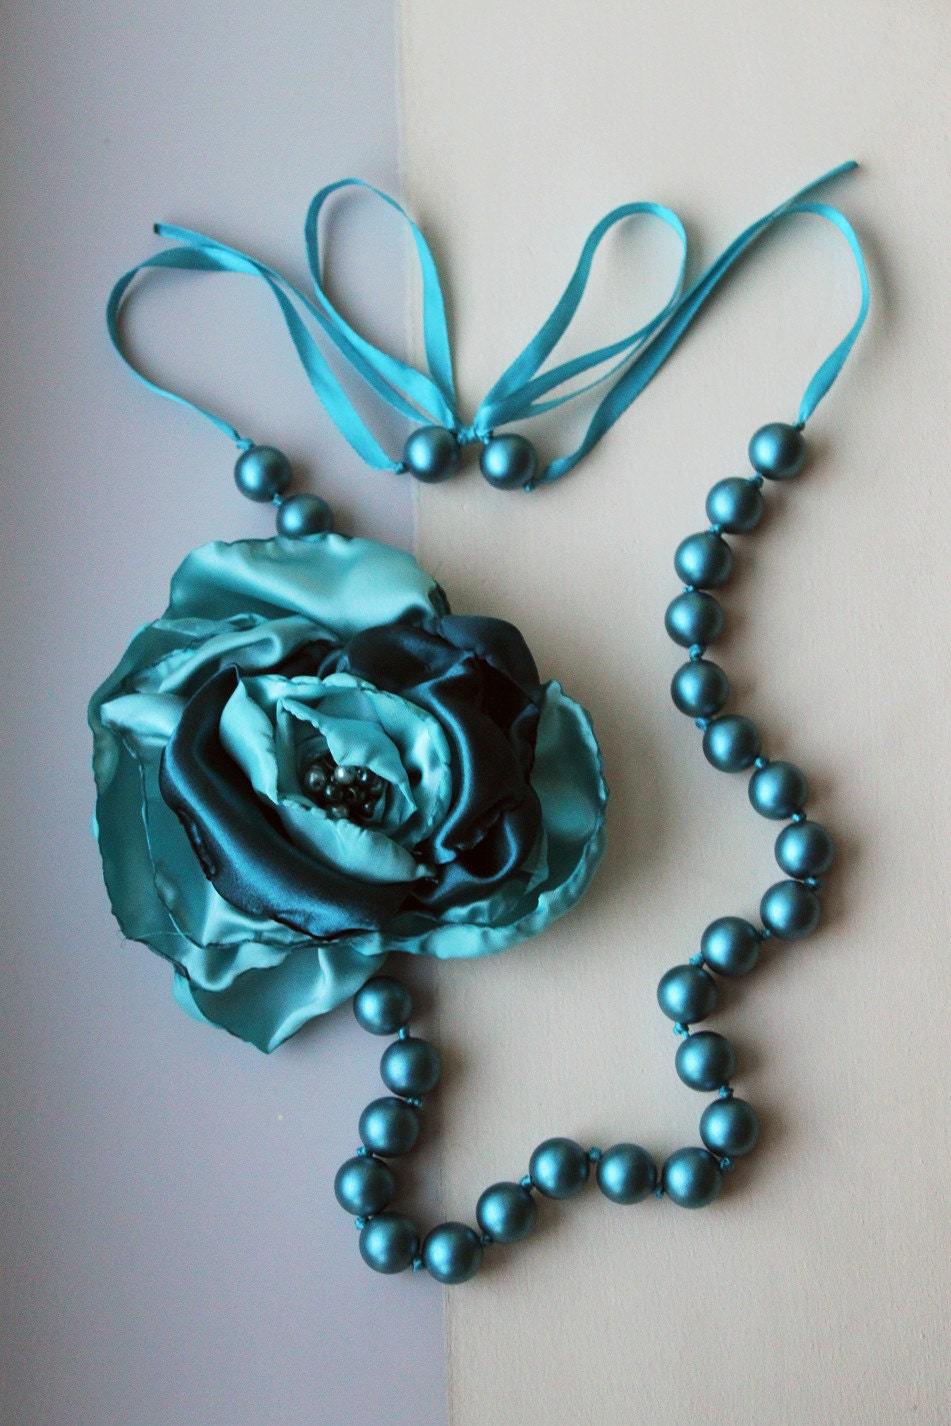 Blue Teal Wood Beads Ribbon Necklace with a Satin Blue Teal Flower - TealAndMagenta